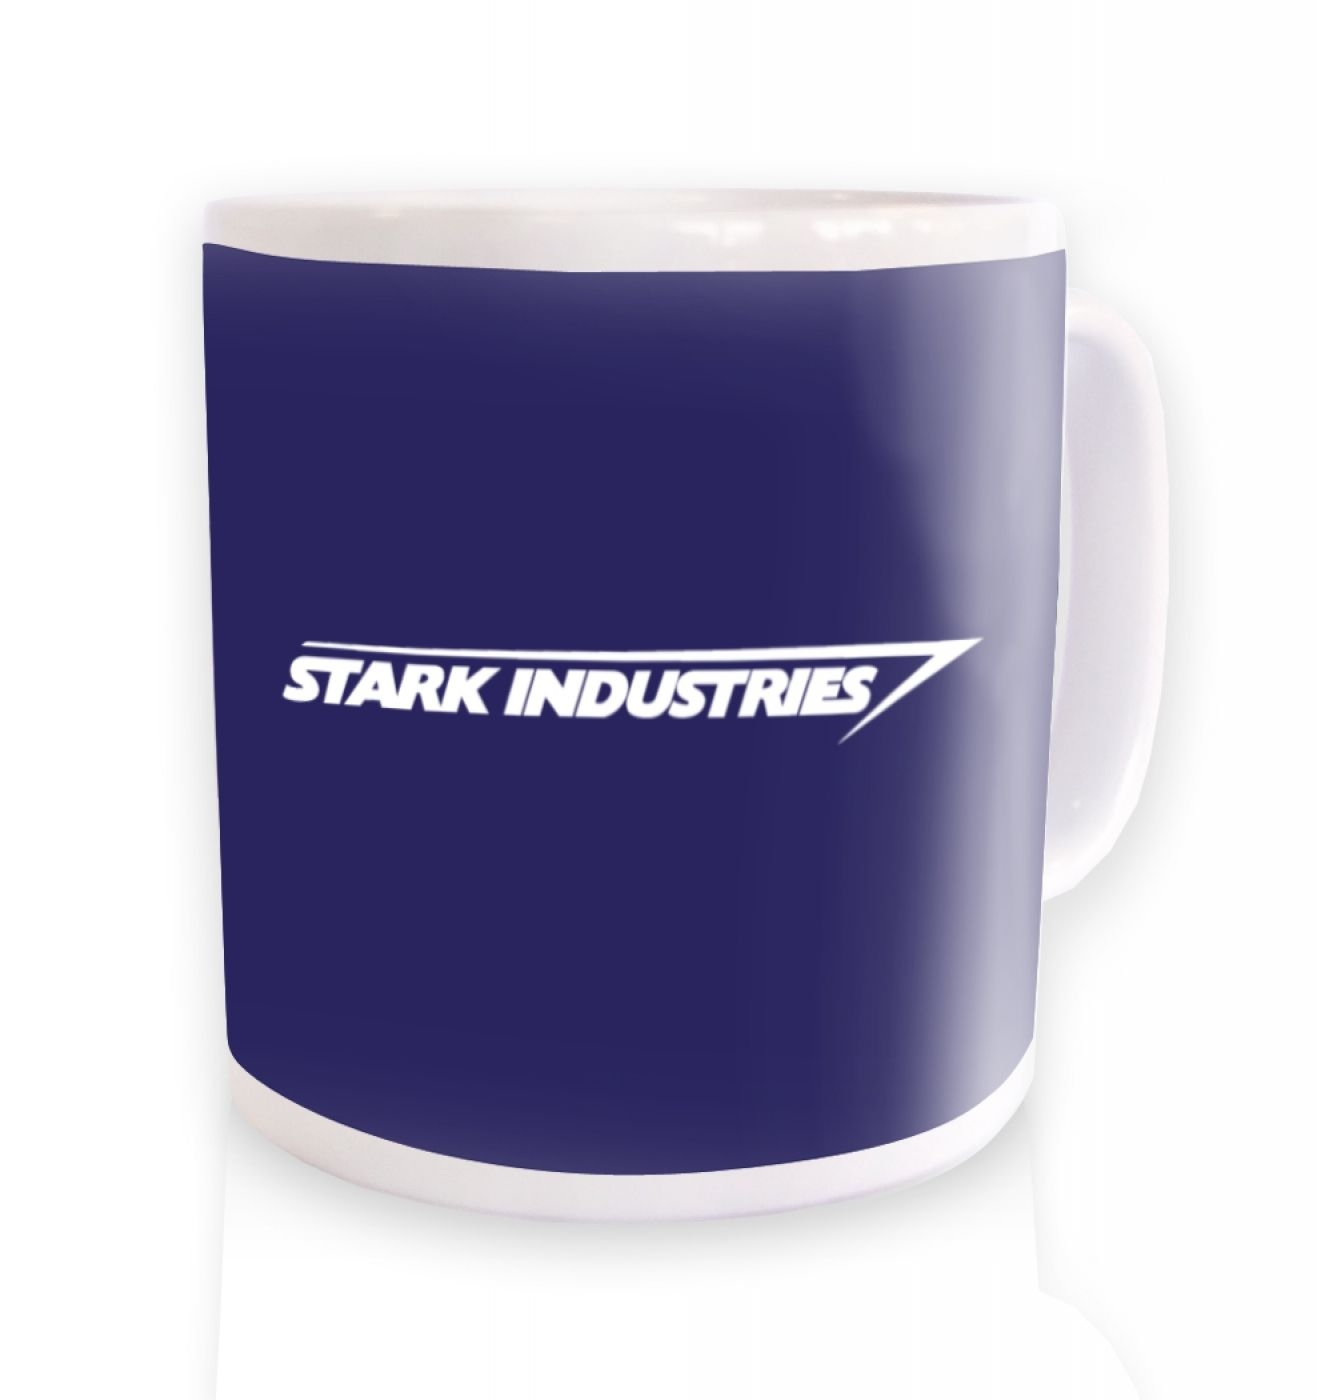 Stark Industries ceramic coffee mug